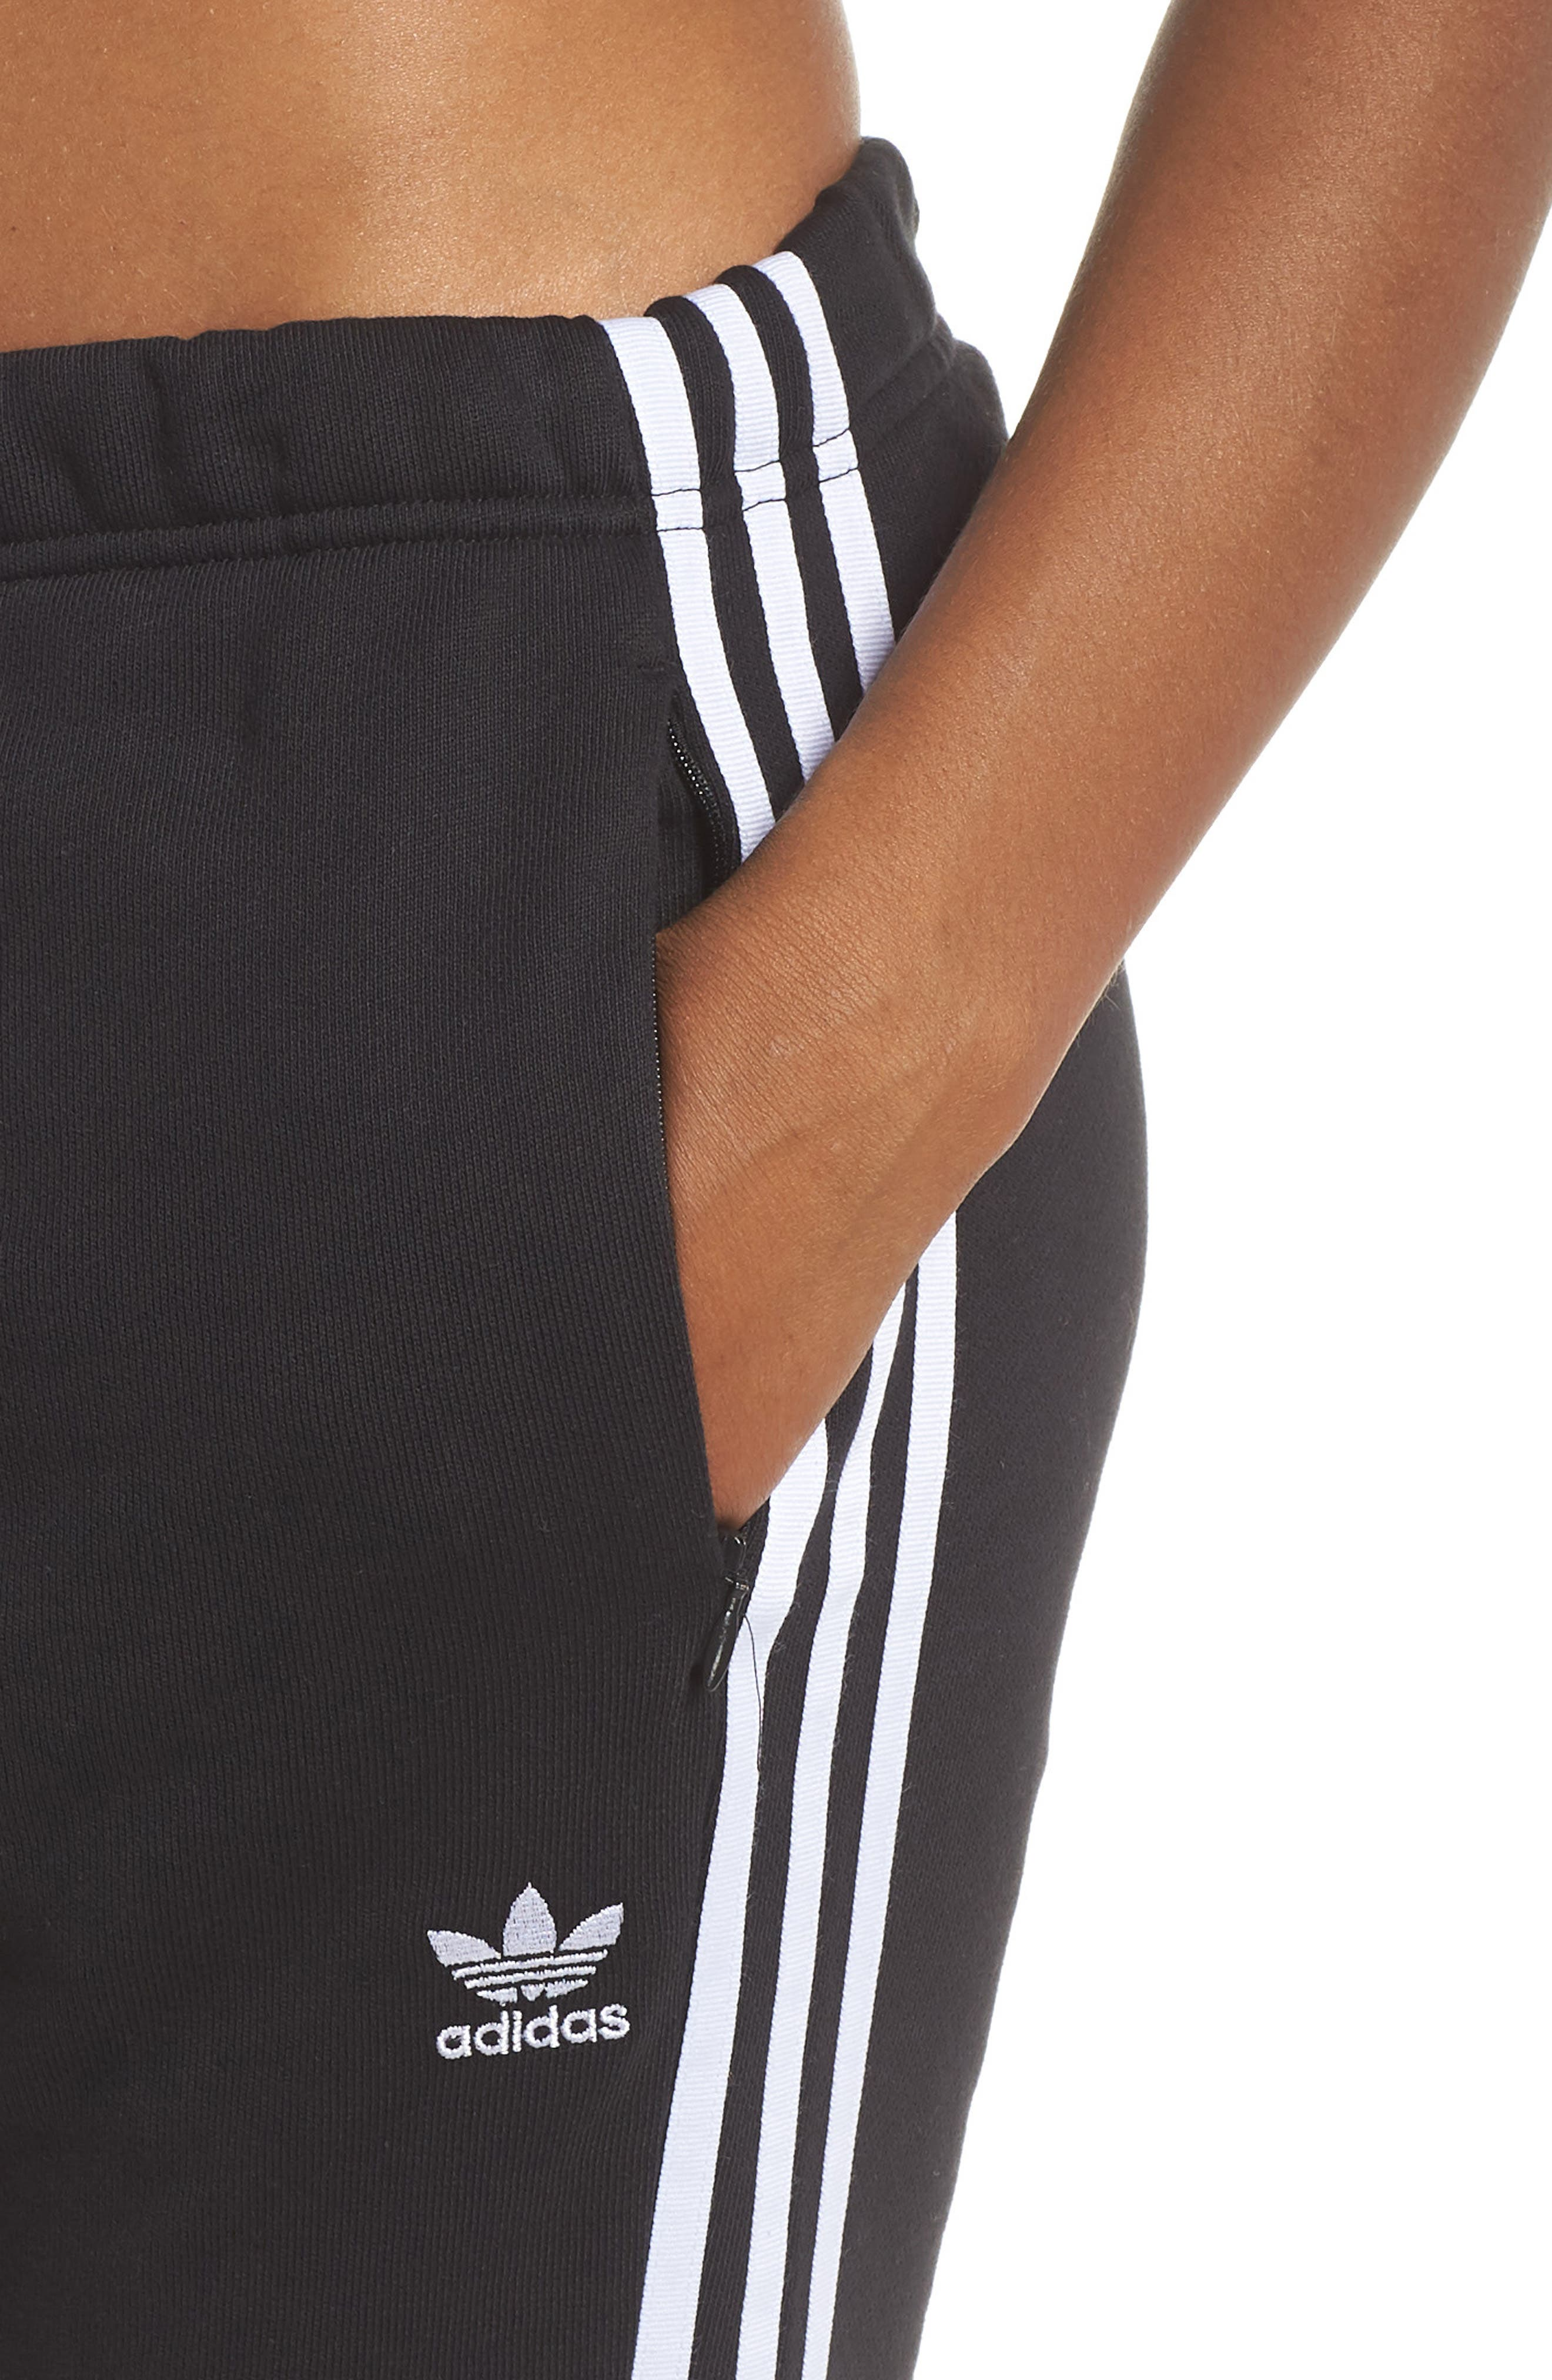 ADIDAS ORIGINALS, Cuffed Track Pants, Alternate thumbnail 5, color, BLACK